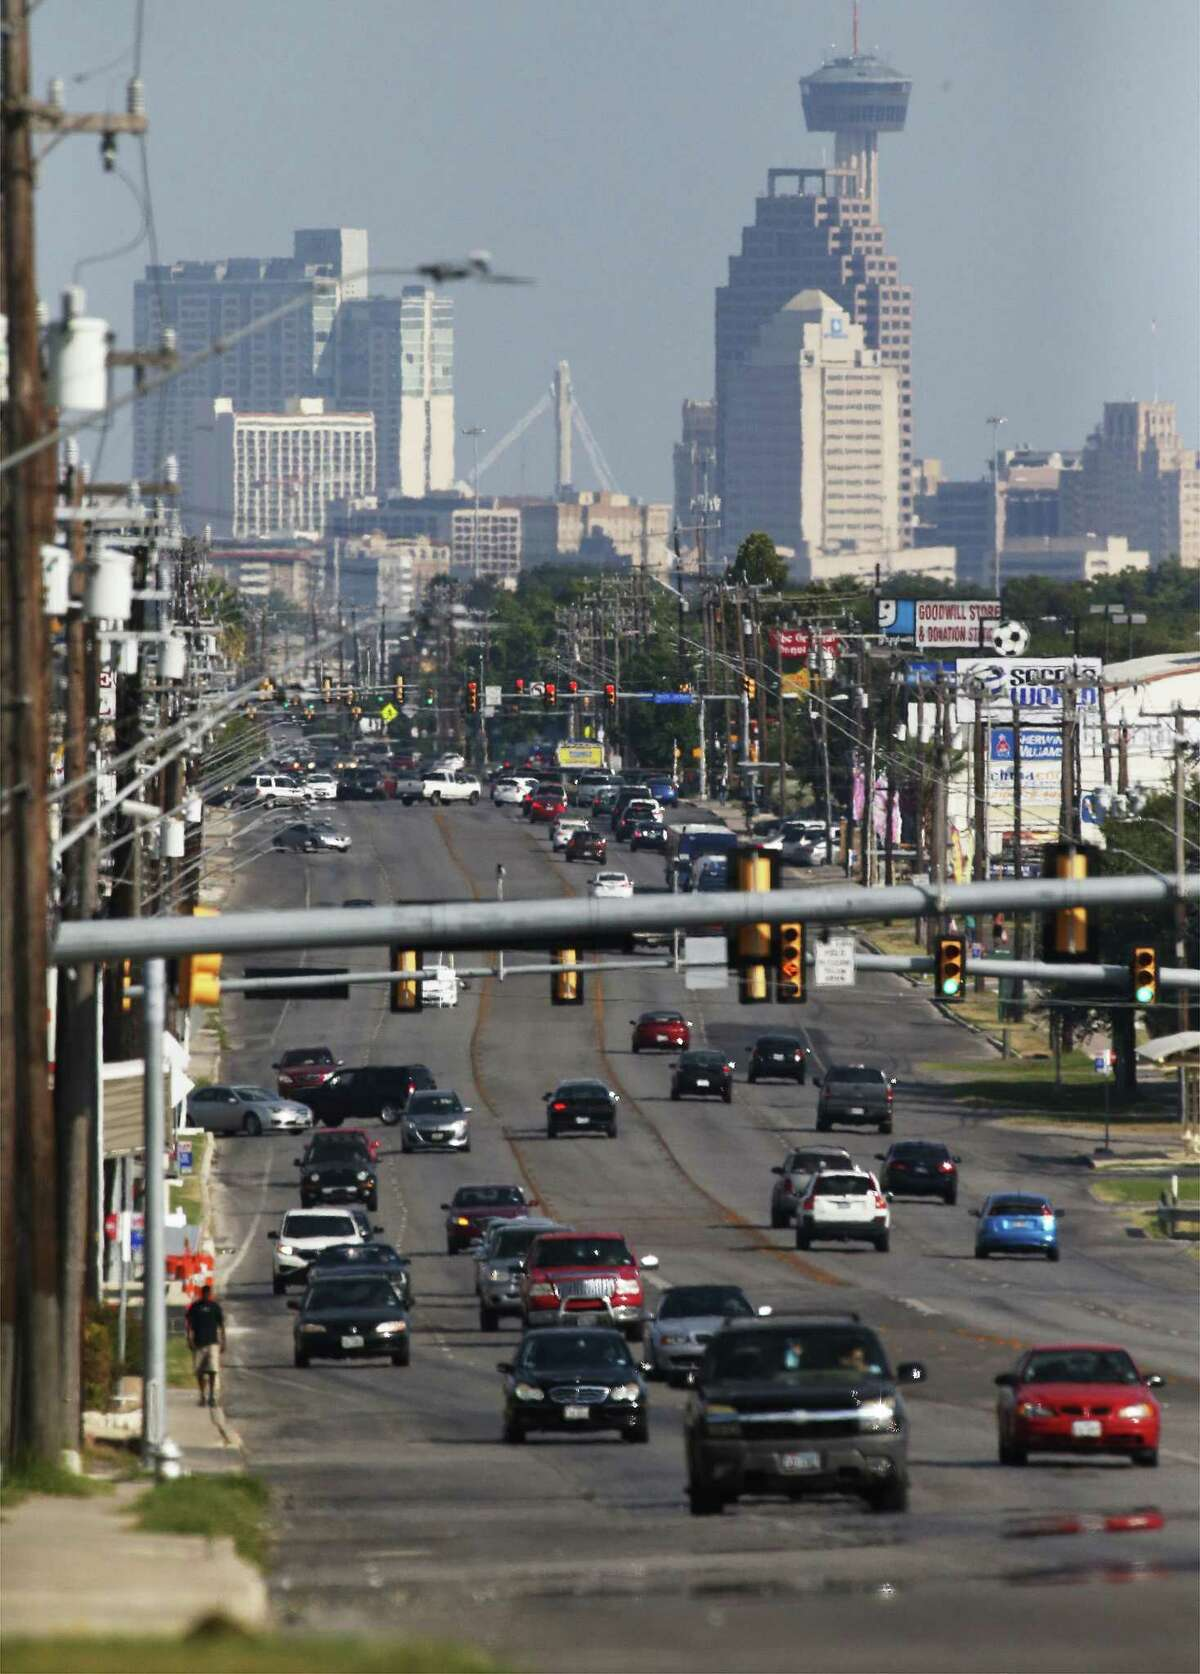 A view of downtown from Fredericksburg Road on Friday, Aug. 12, 2016. The ozone levels in San Antonio's statistics causes 52 premature deaths per year according to a new public health study by New York University and the American Thoracic Society. (Kin Man Hui/San Antonio Express-News)